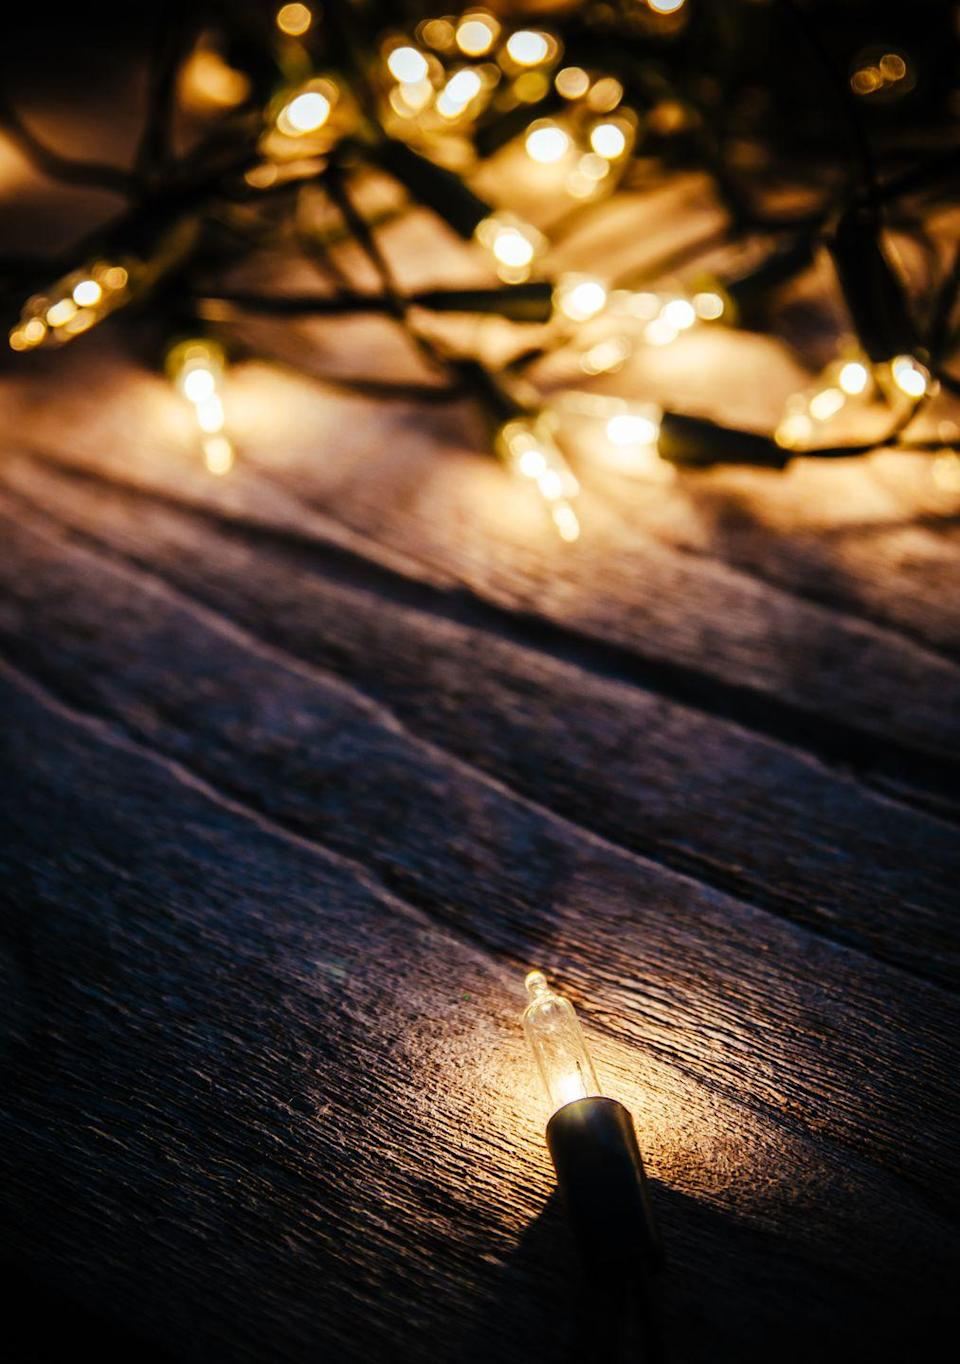 """<p>With so many <a href=""""https://www.countryliving.com/gardening/news/g3404/backyard-string-lights/"""" rel=""""nofollow noopener"""" target=""""_blank"""" data-ylk=""""slk:dreamy ways to decorate"""" class=""""link rapid-noclick-resp"""">dreamy ways to decorate</a> year-round with twinkly lights, why settle for standard strands when bulbs now come in so many different <a href=""""https://www.countryliving.com/home-design/decorating-ideas/g2794/decorating-ideas-christmas-lights/"""" rel=""""nofollow noopener"""" target=""""_blank"""" data-ylk=""""slk:magical styles"""" class=""""link rapid-noclick-resp"""">magical styles</a>. </p>"""